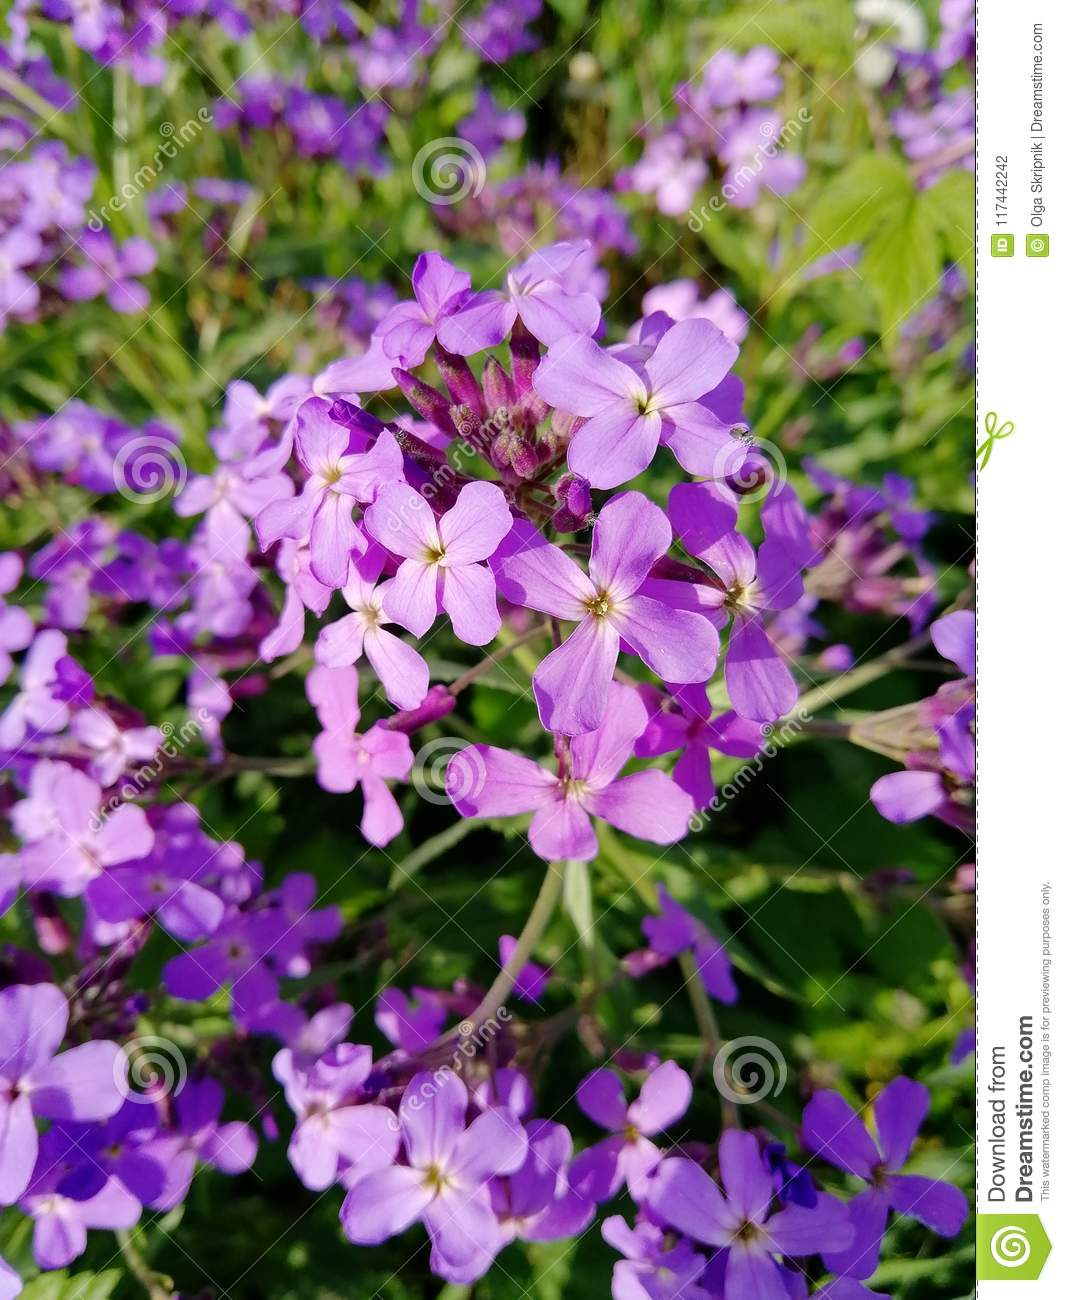 Small Purple Flowers Spring Summer Grows Stock Photo Image Of